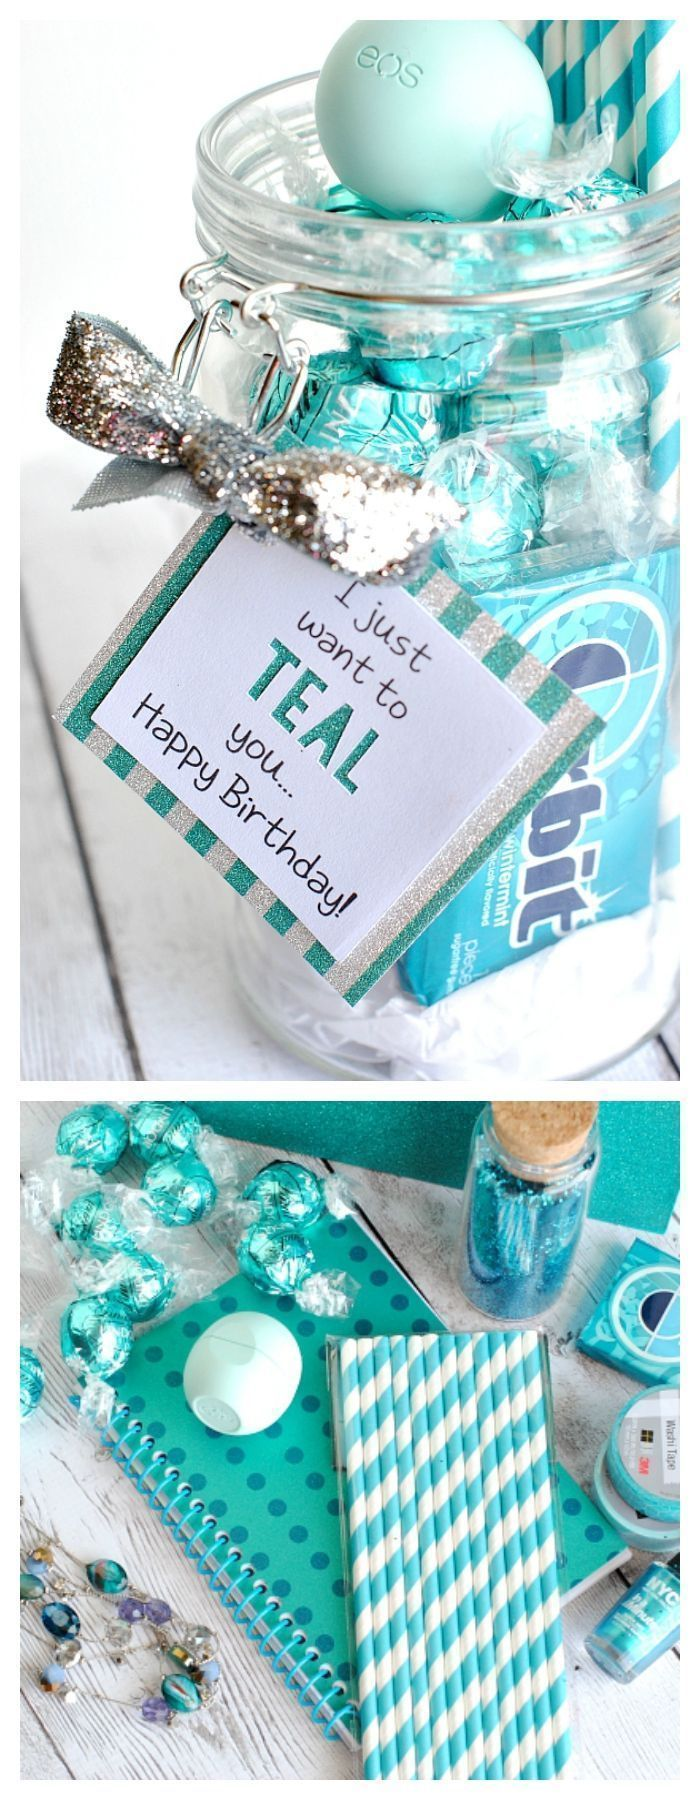 Do It Yourself Gift Basket Ideas For All Occasions – Teal Theme Gift …, …